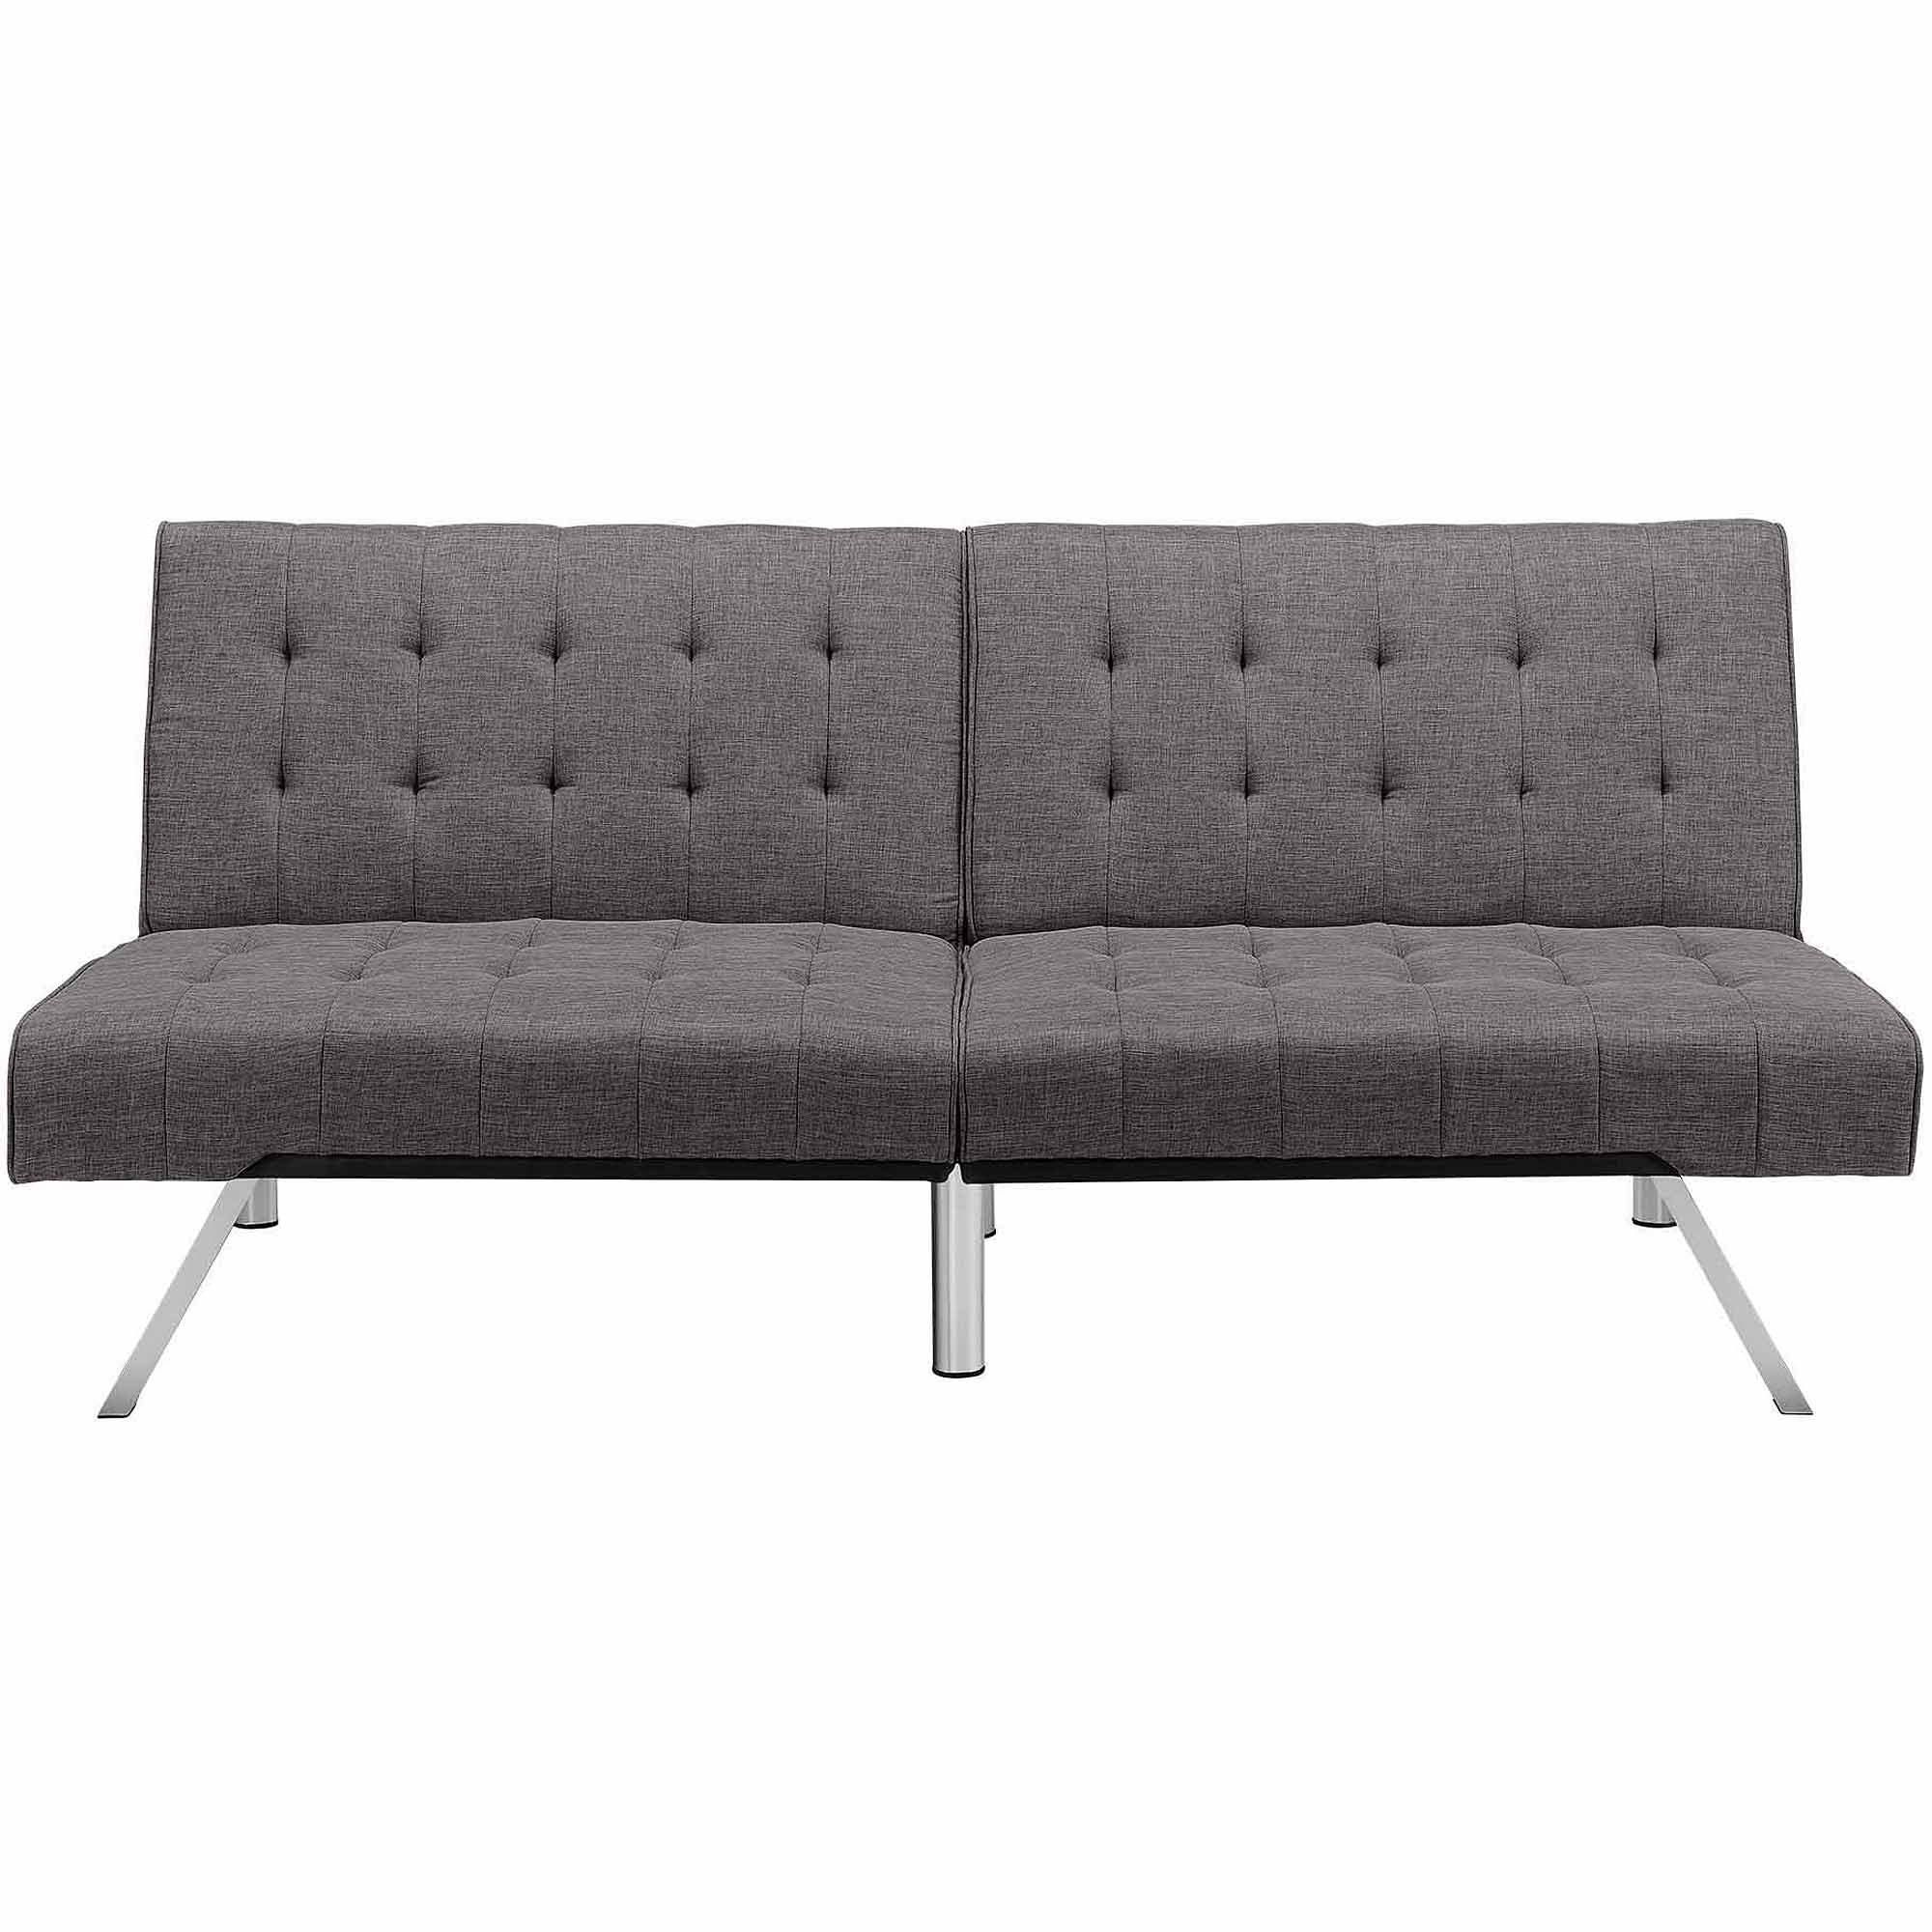 DHP Emily Convertible Futon Sofa Couch, Multiple Colors